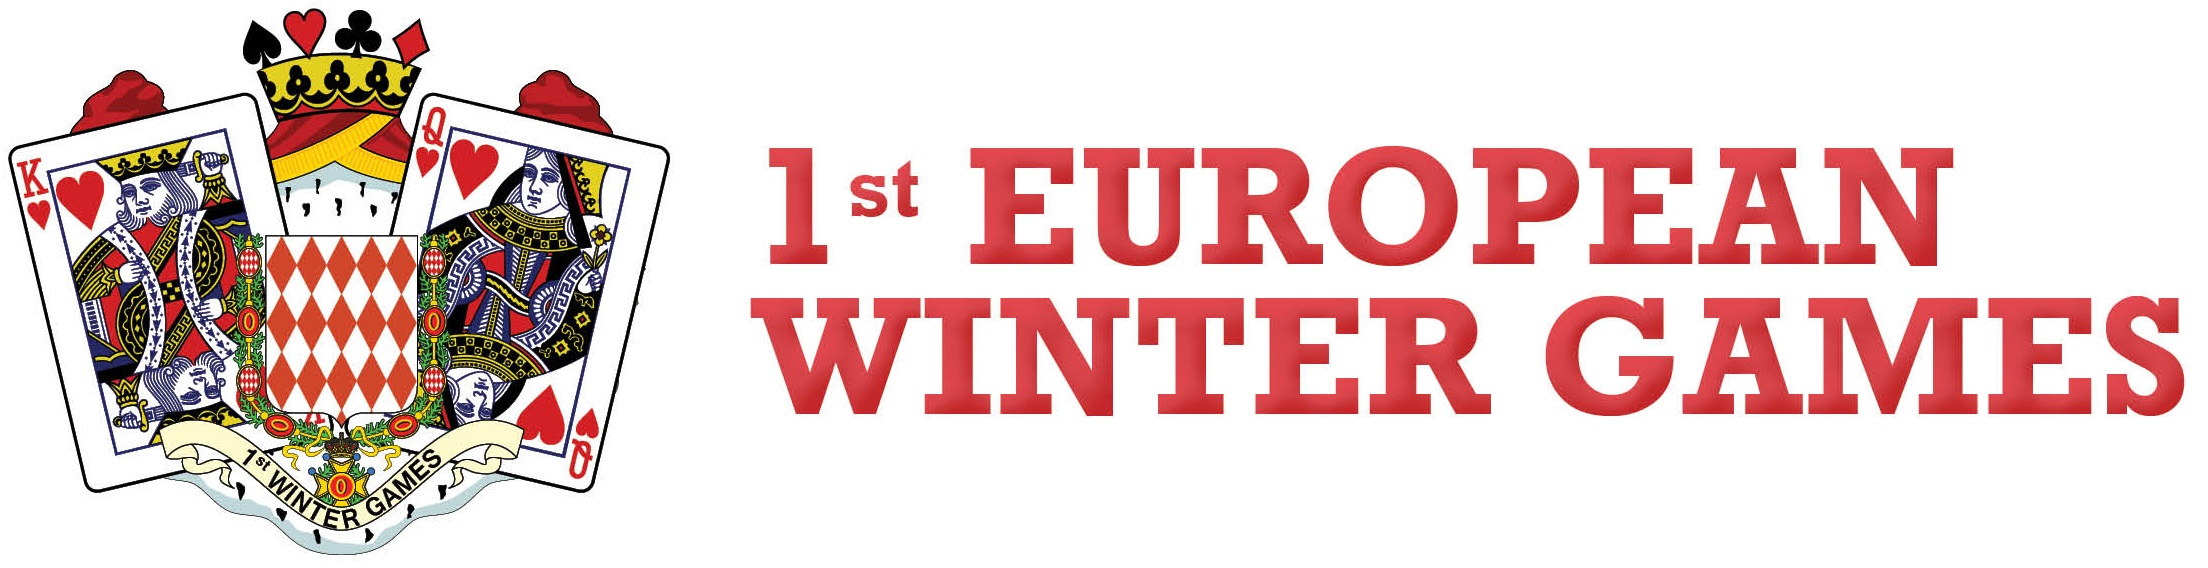 European Winter Games